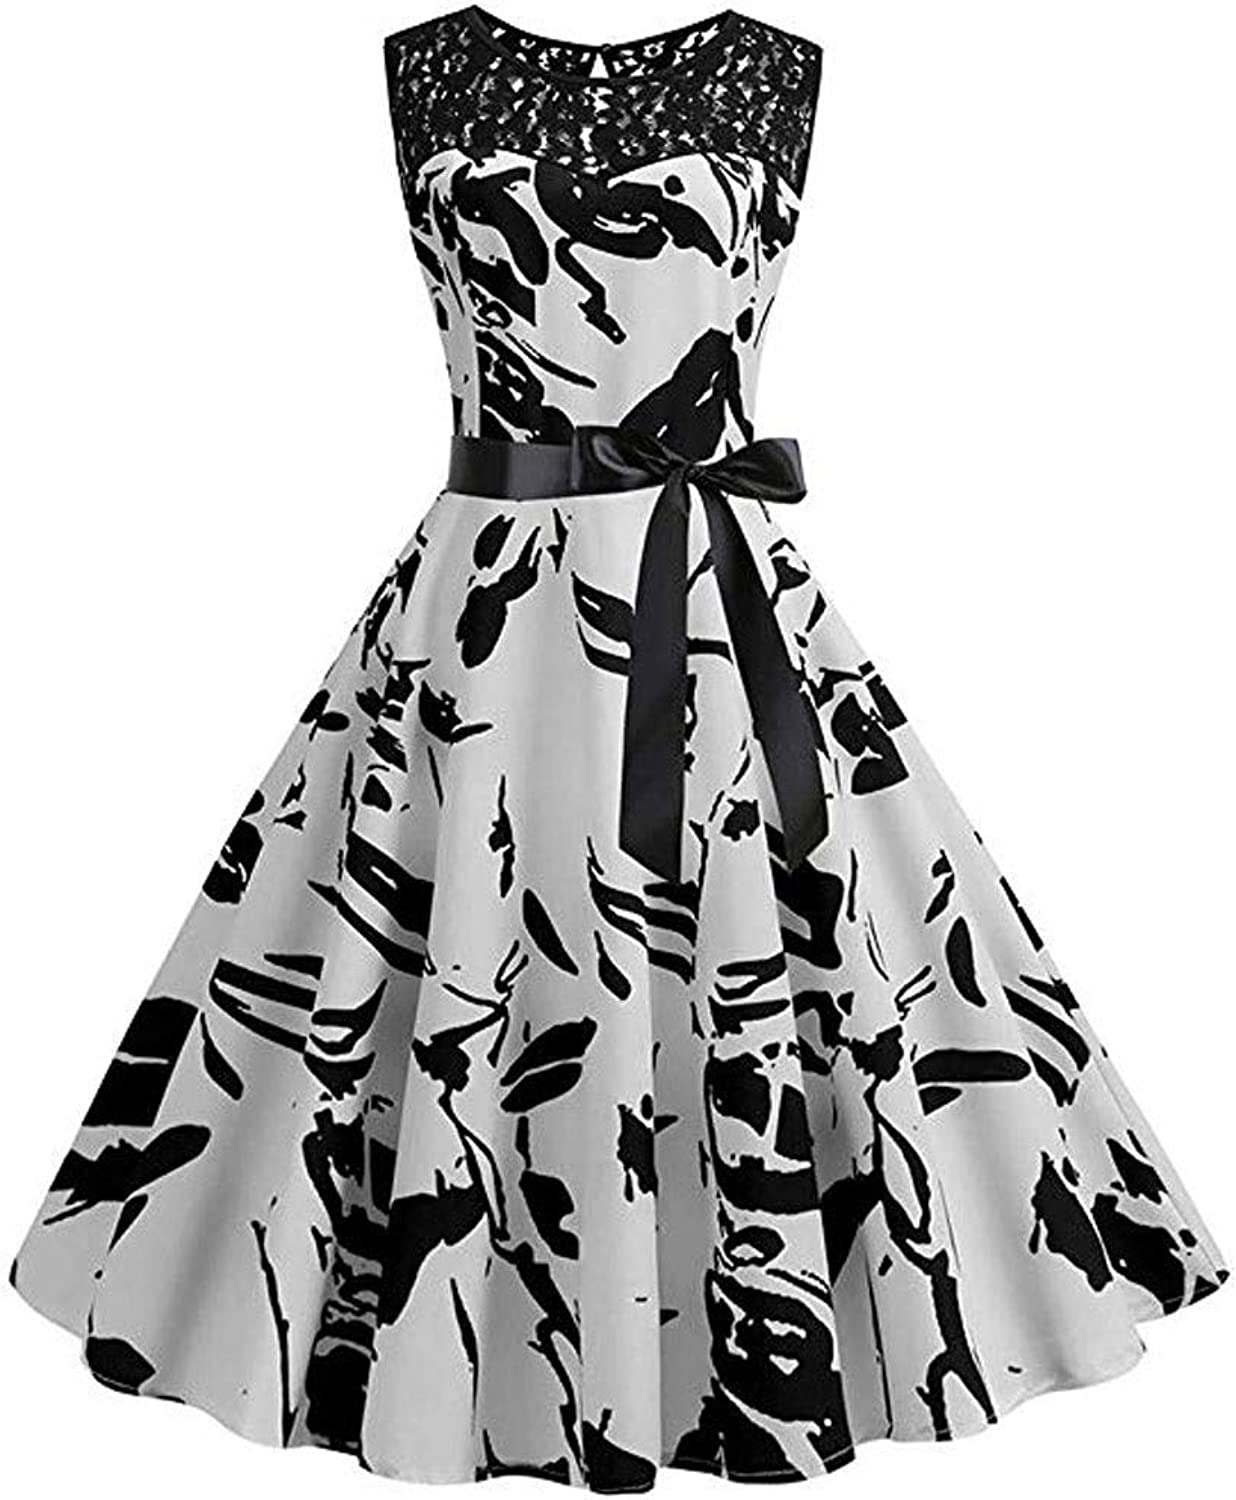 DMIZ Women Vintage Sleeveless Lace Splice Printing Party Prom Swing Dress Sleeveless Long Sleeve Loose Plain Maxi Dresses Casual Long Dresses Swing Party Dress with Bow (Size   XL)